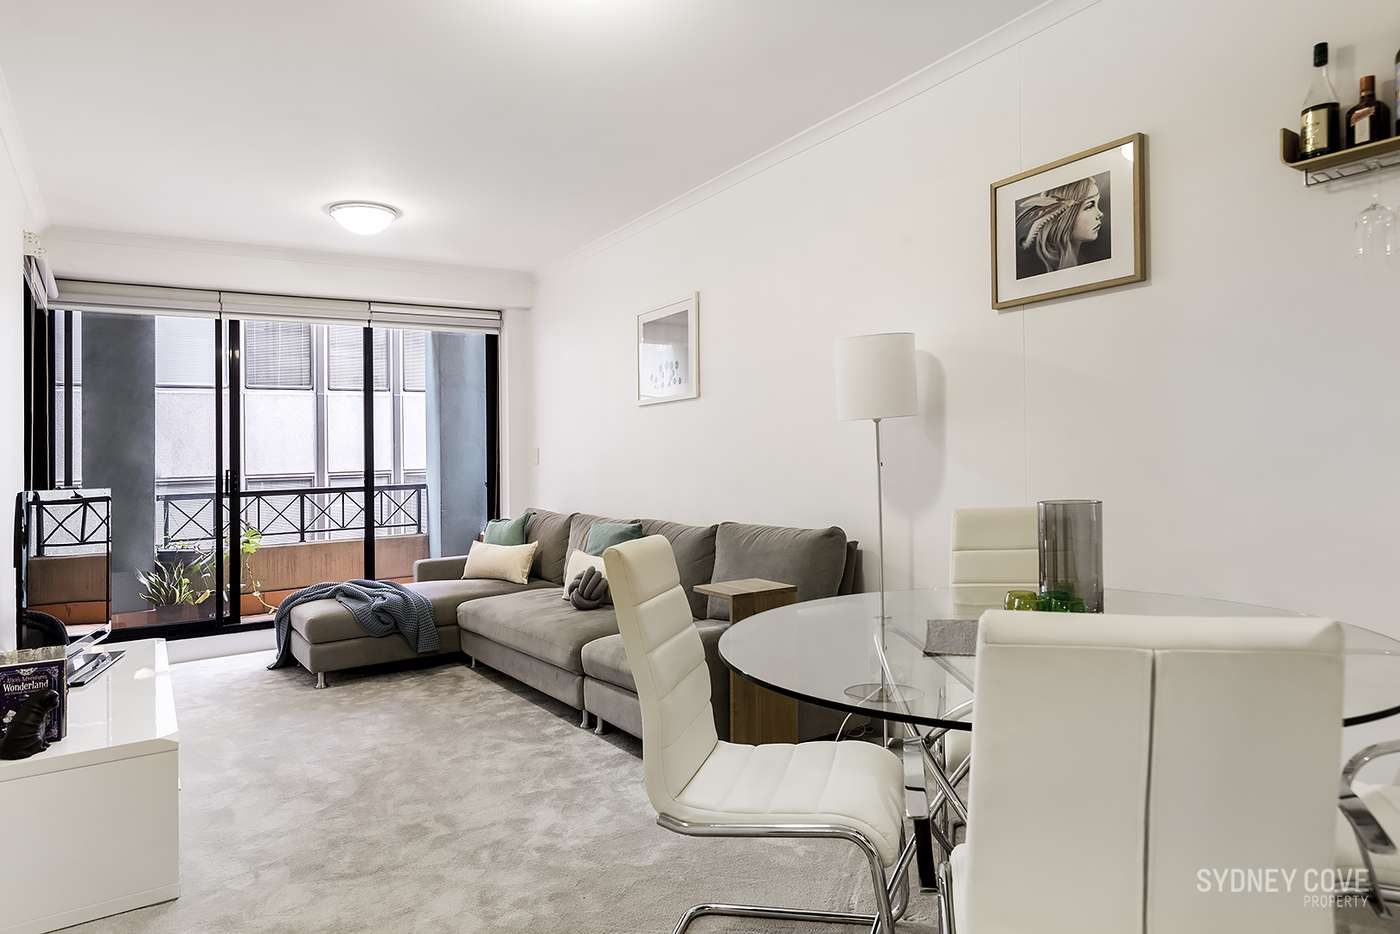 Main view of Homely apartment listing, 1 Hosking Place, Sydney NSW 2000